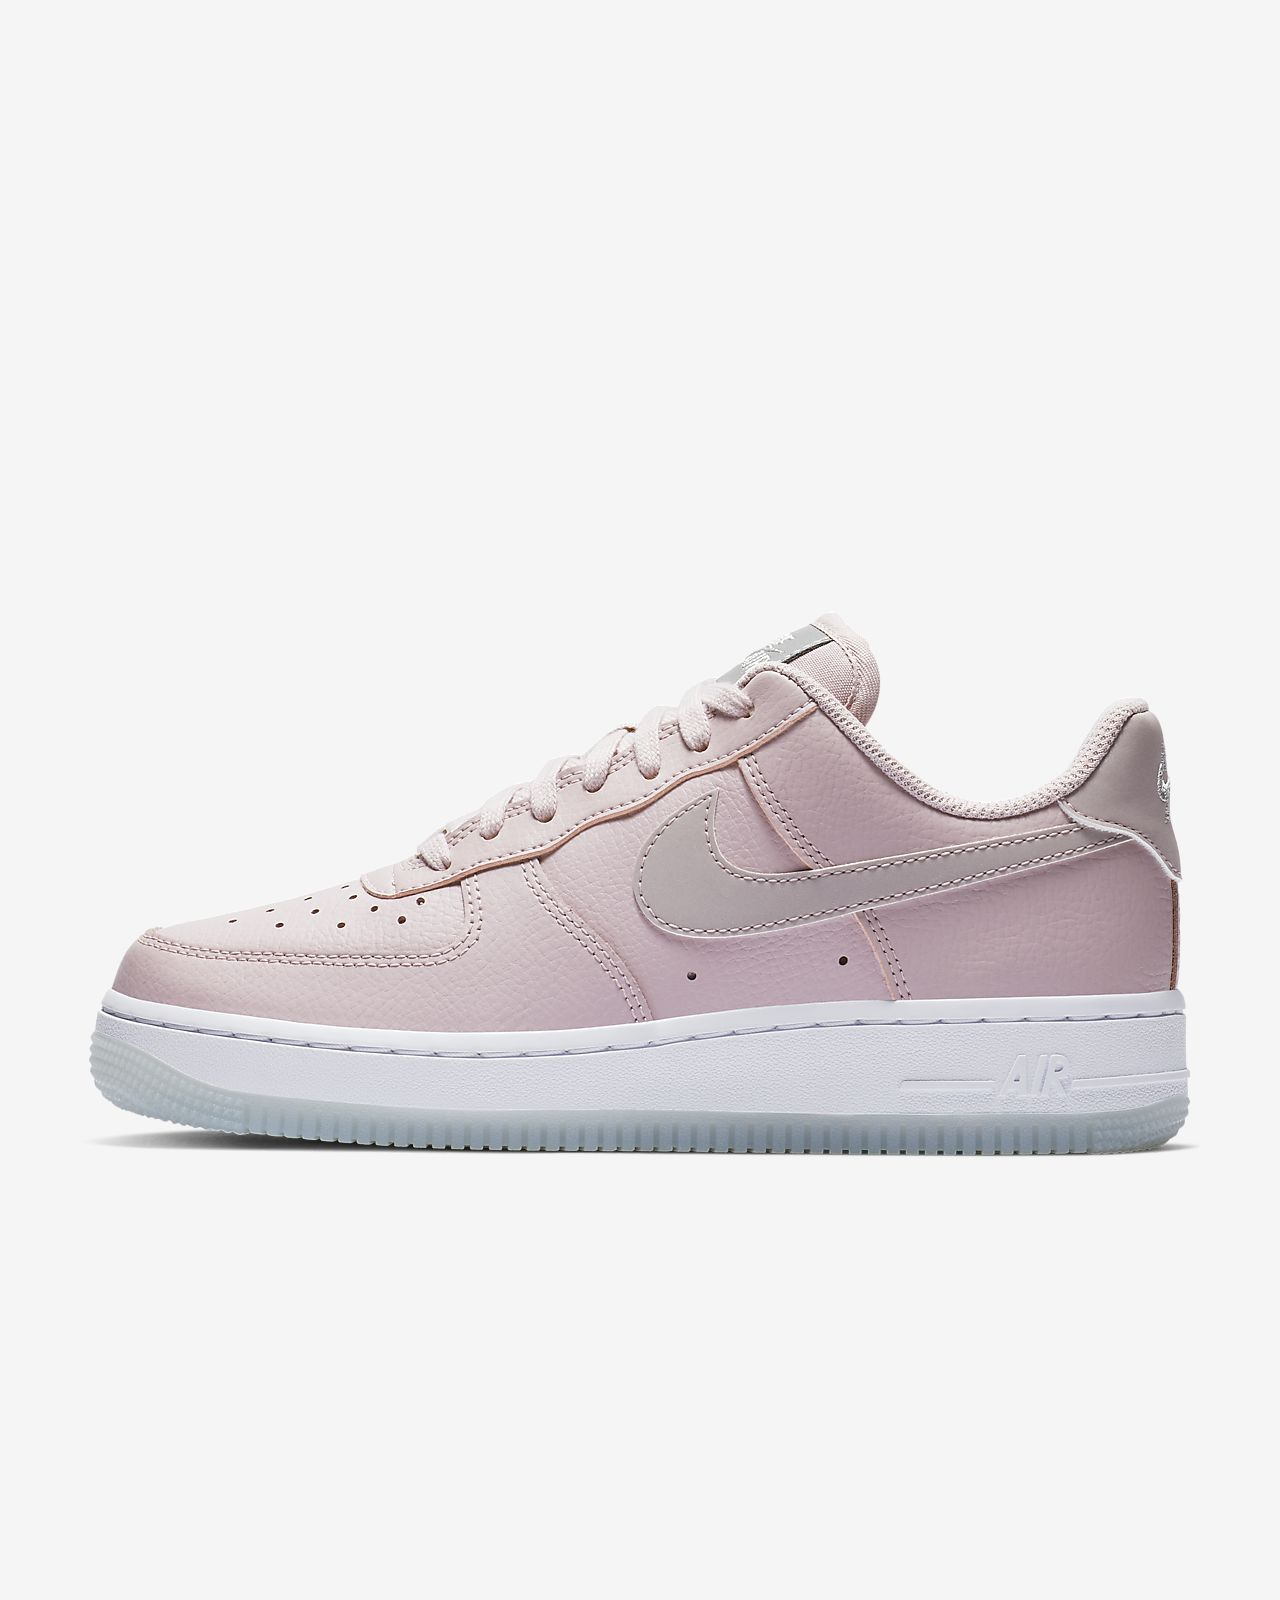 Женские кроссовки Nike Air Force 1  07 Essential. Nike.com RU 3cc89ab8c1292